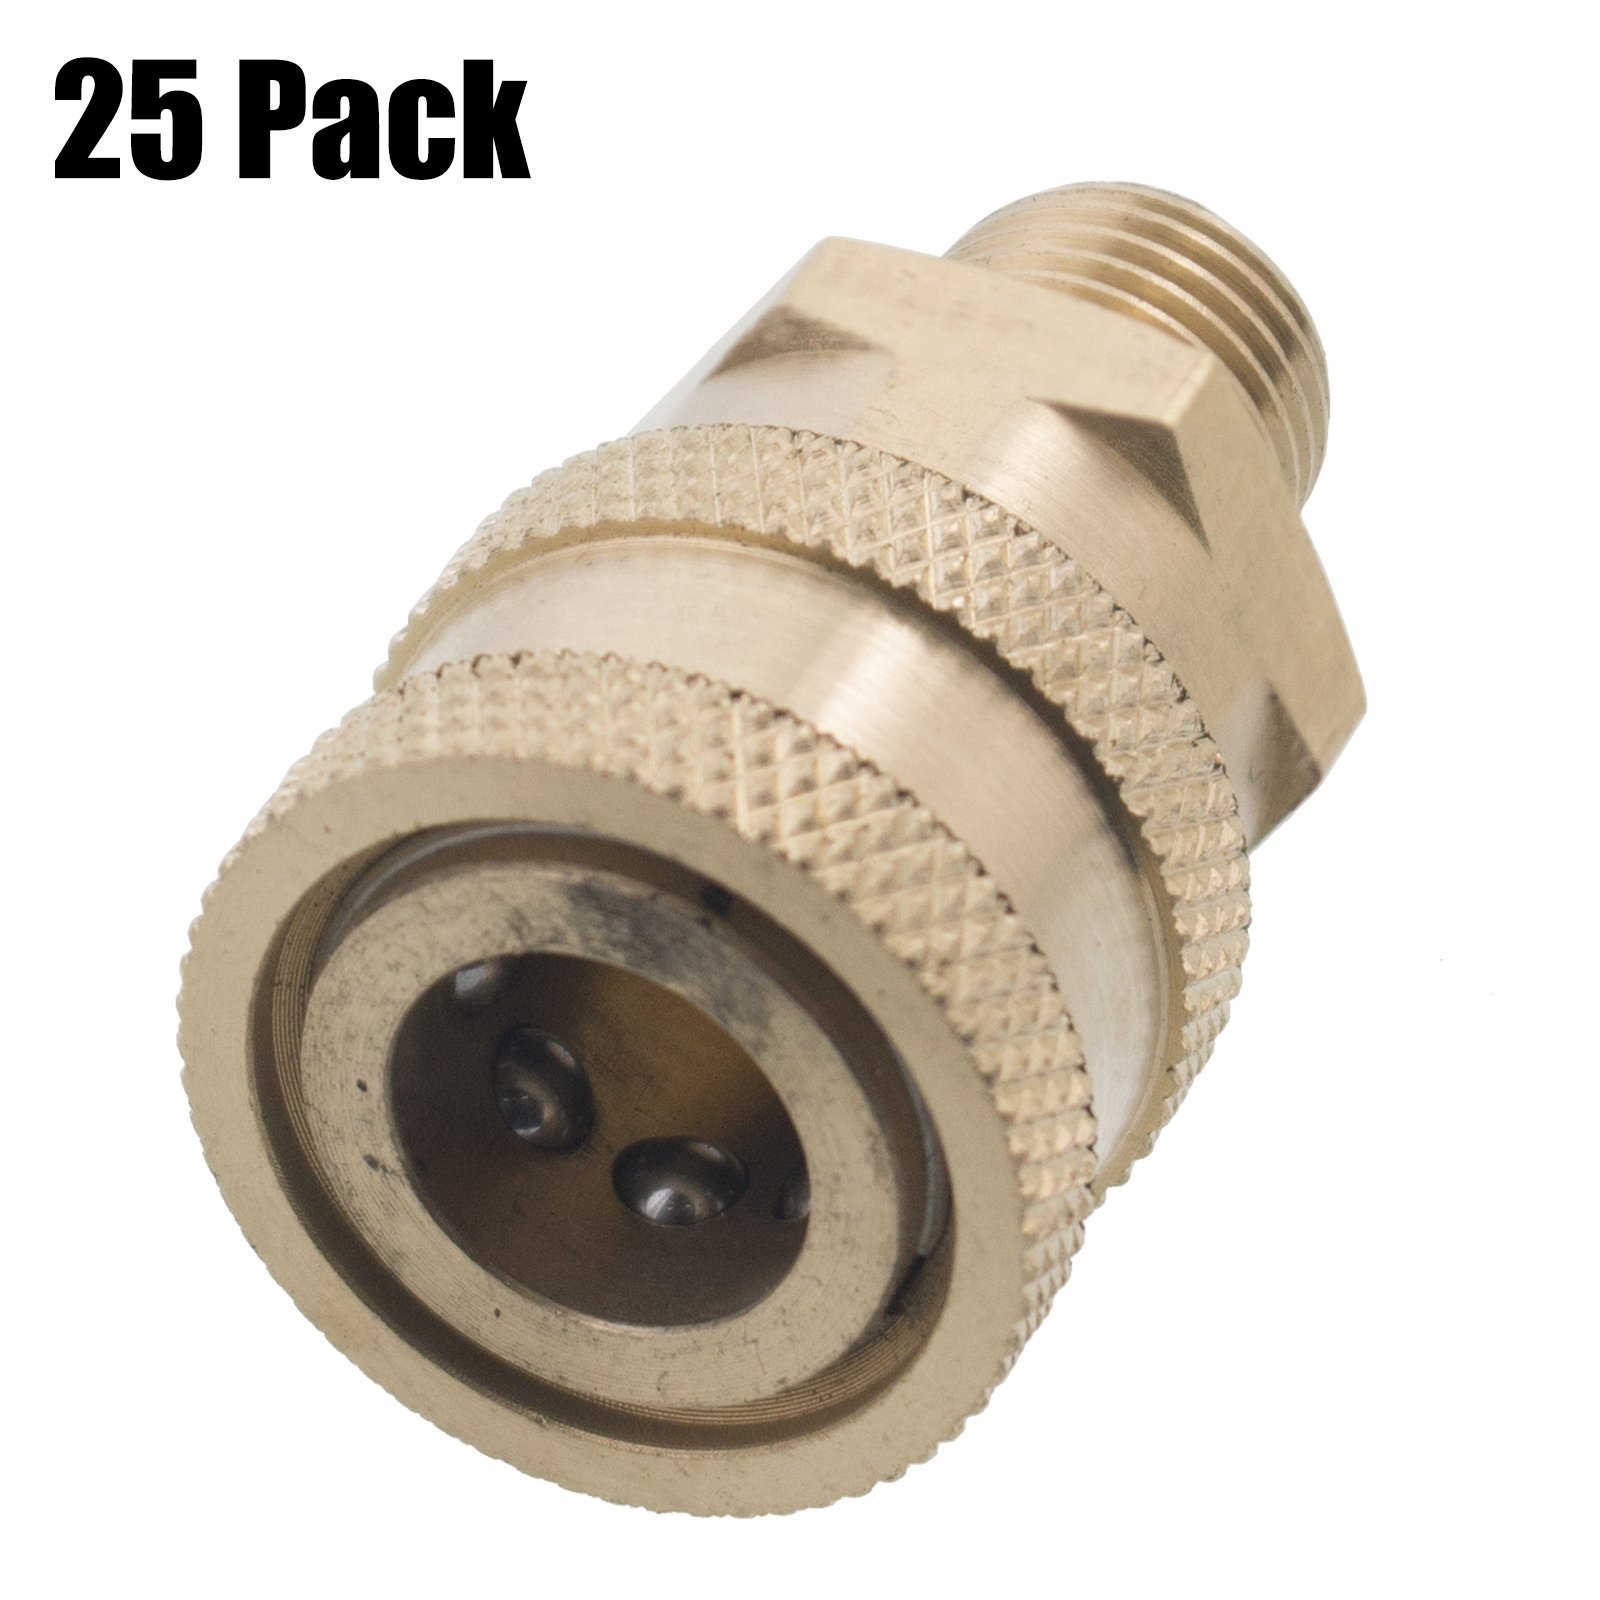 Erie Tools 25 Pressure Washer 1/4 Male NPT to Quick Connect Socket Brass Coupler, High Temp, 4000 PSI, 10.5 GPM